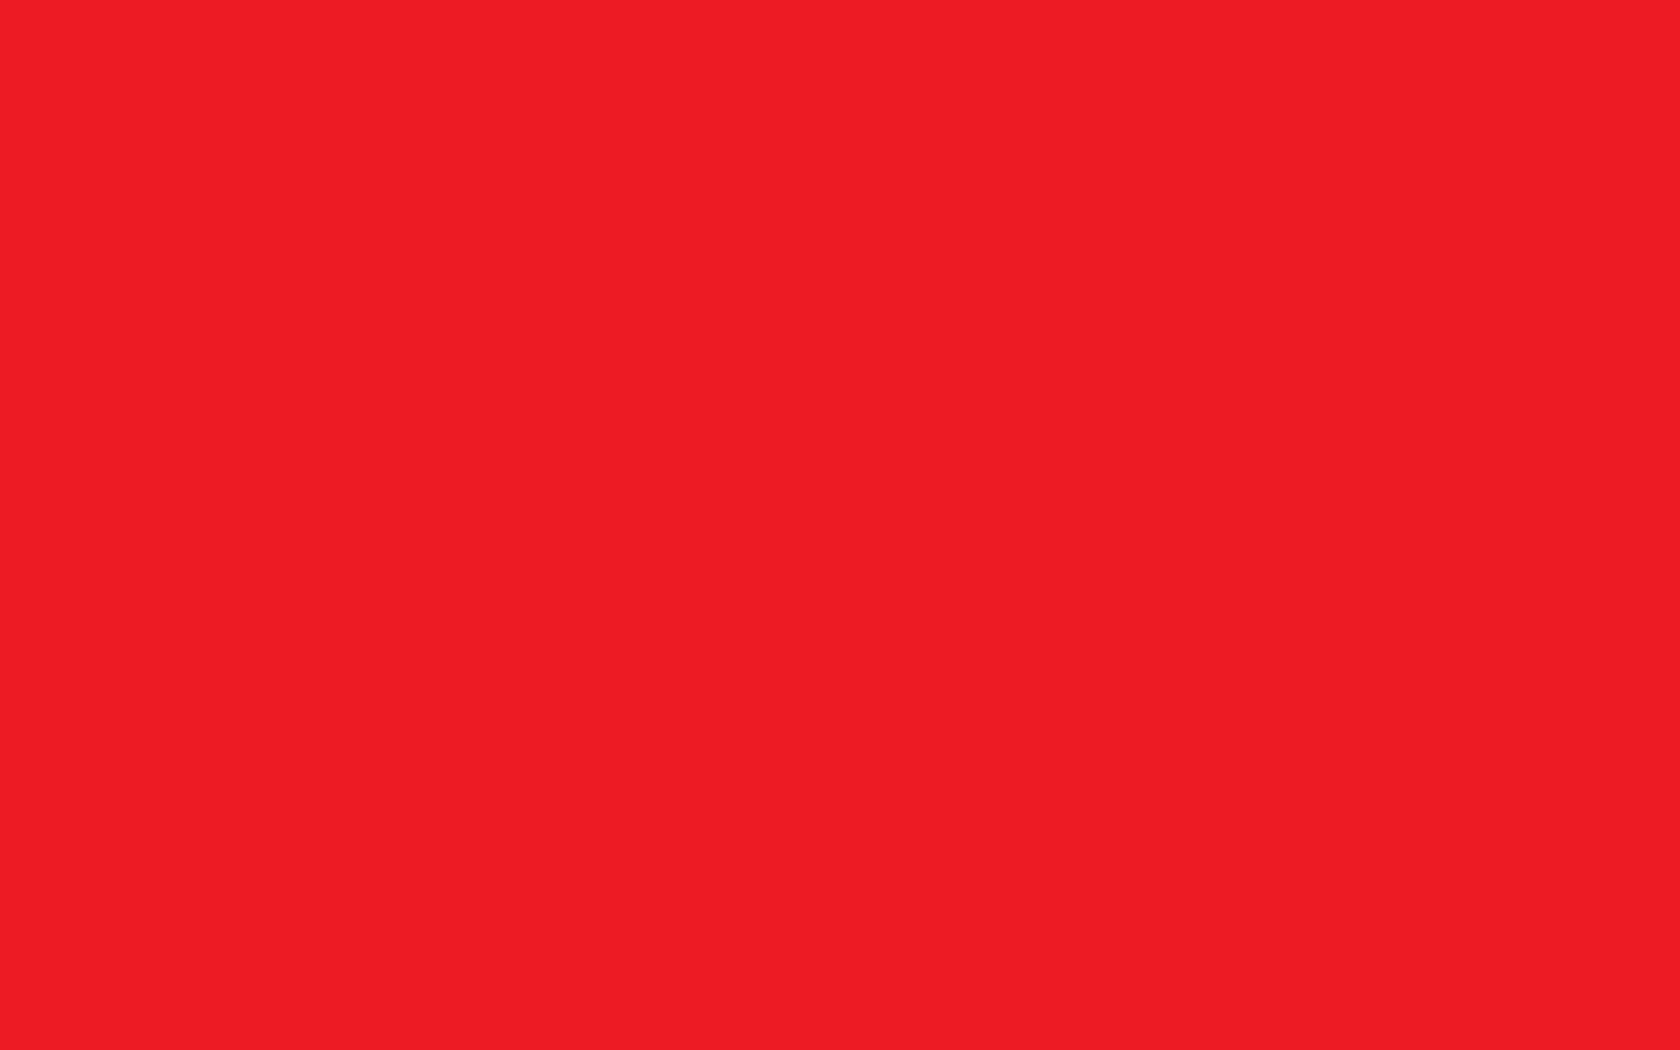 1680x1050 Red Pigment Solid Color Background